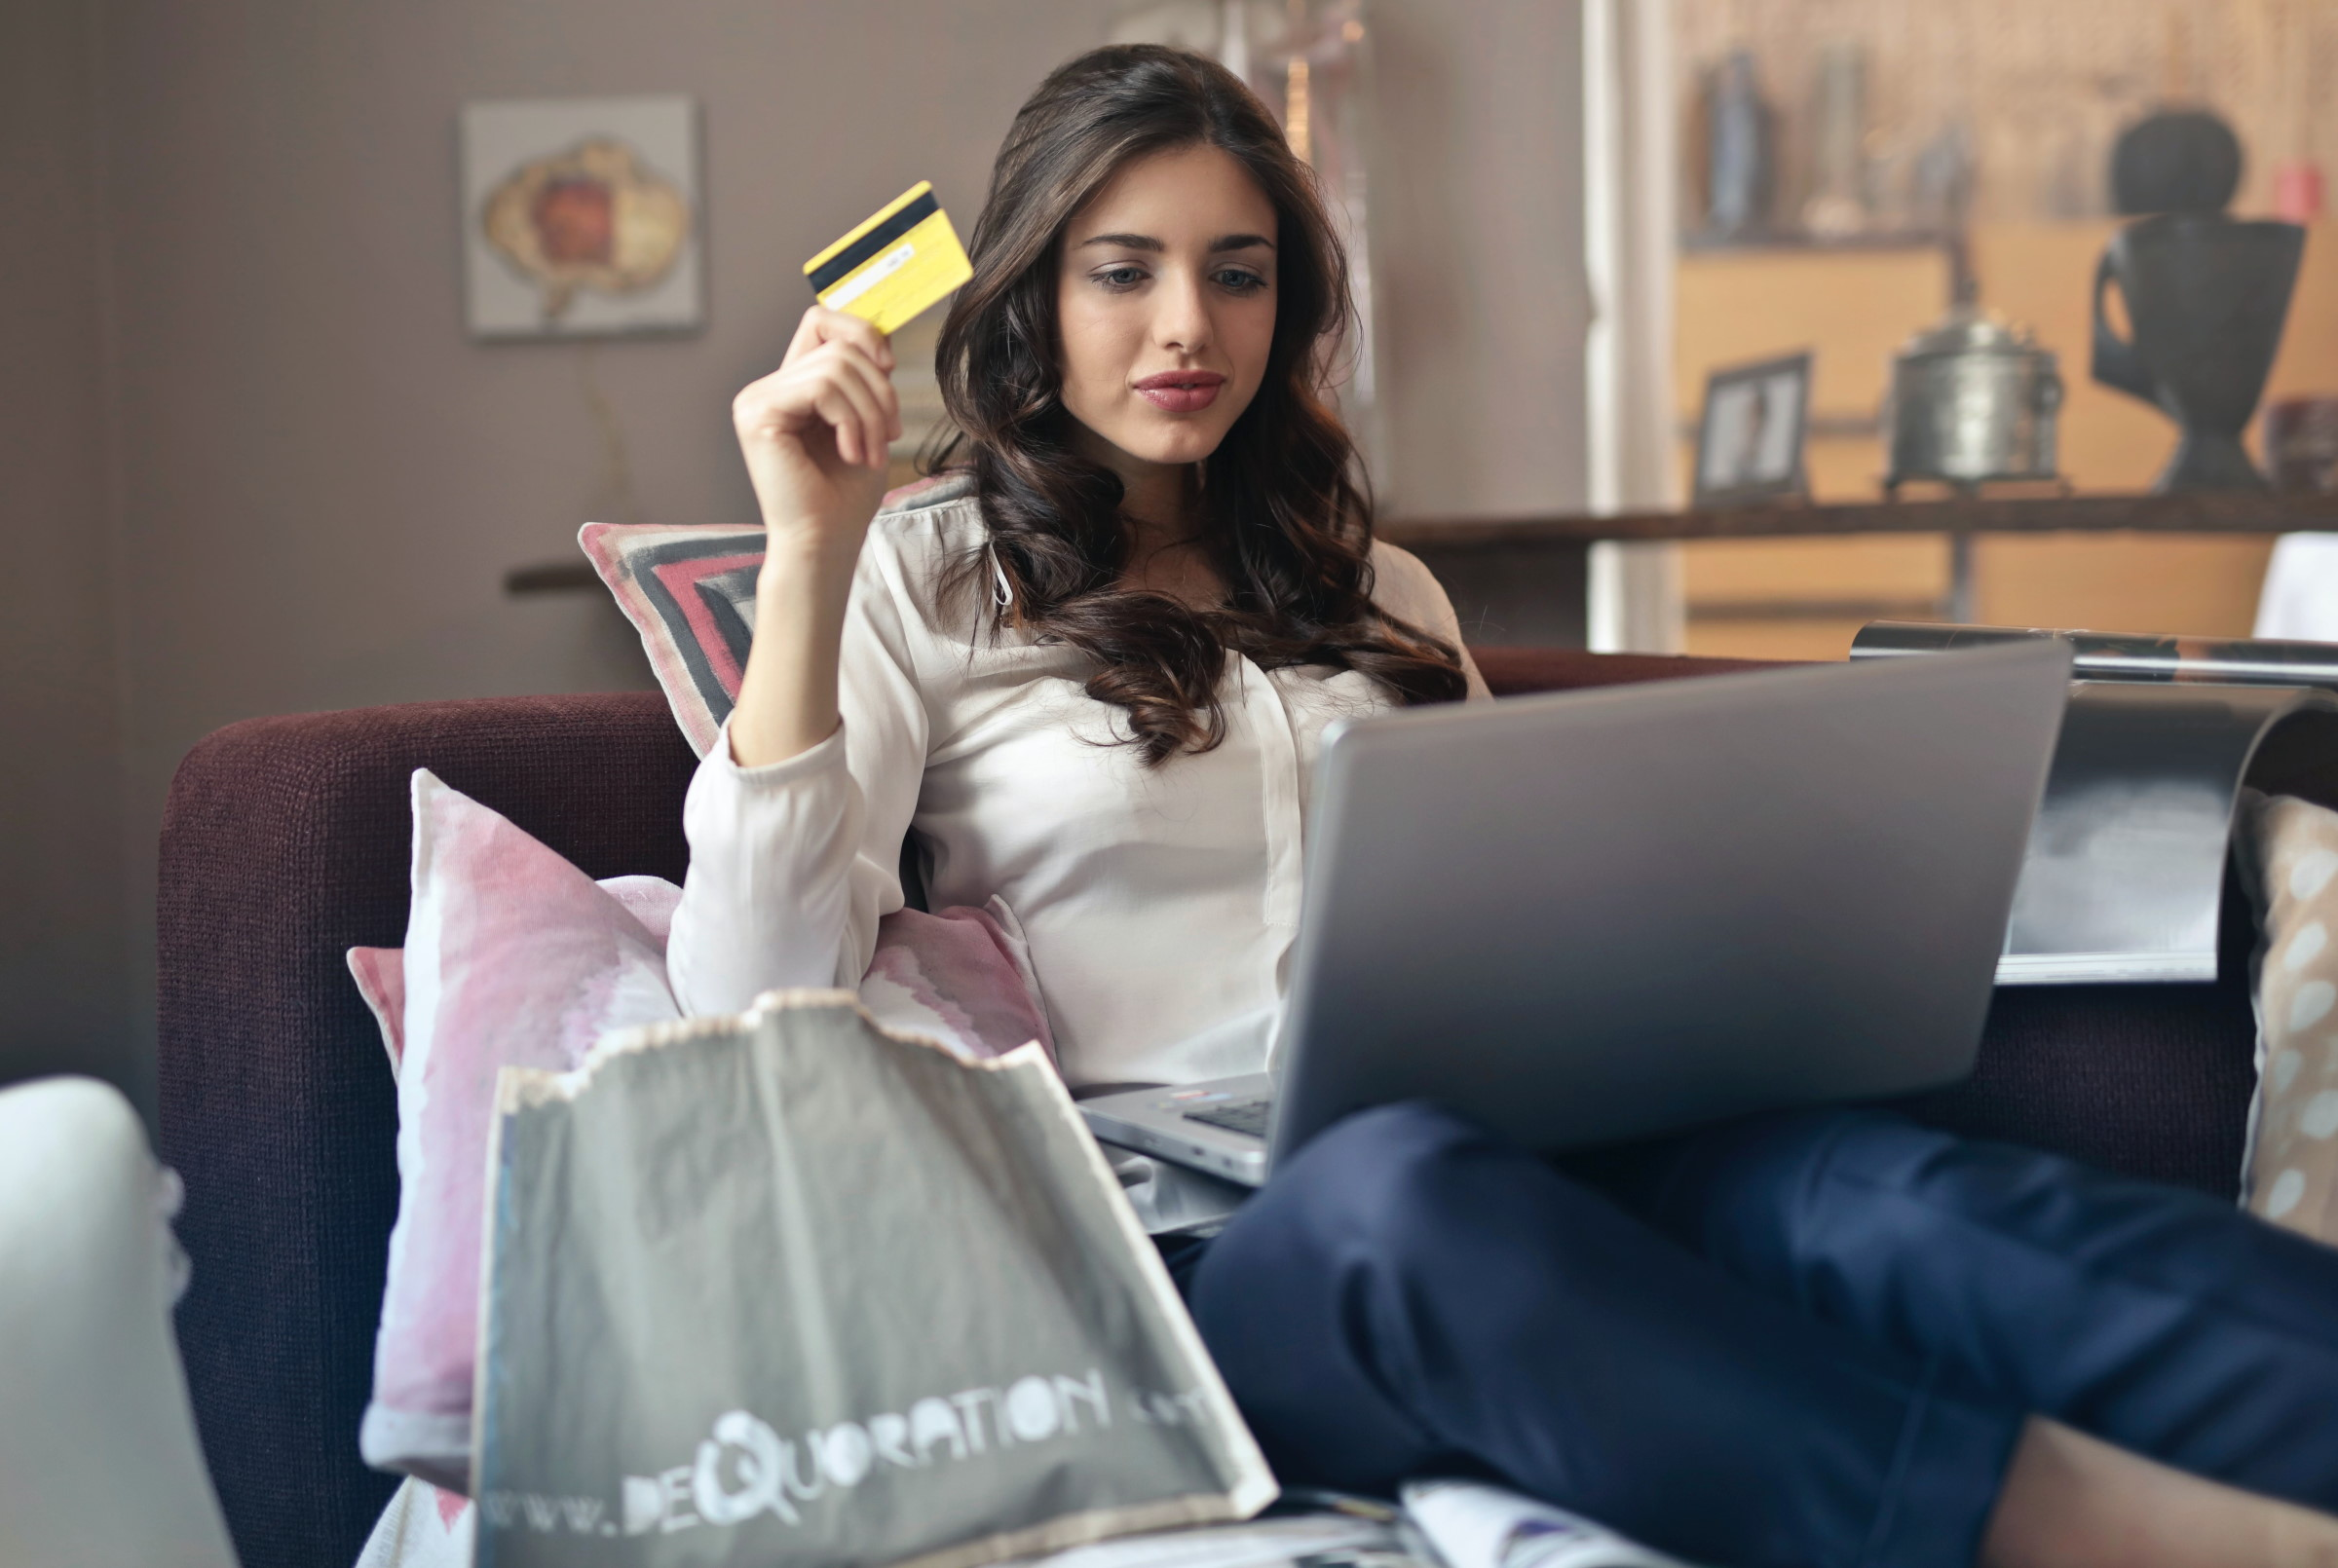 The Best Bargains And Buys From The 6.6 – 7.7 Great Shopee Sale